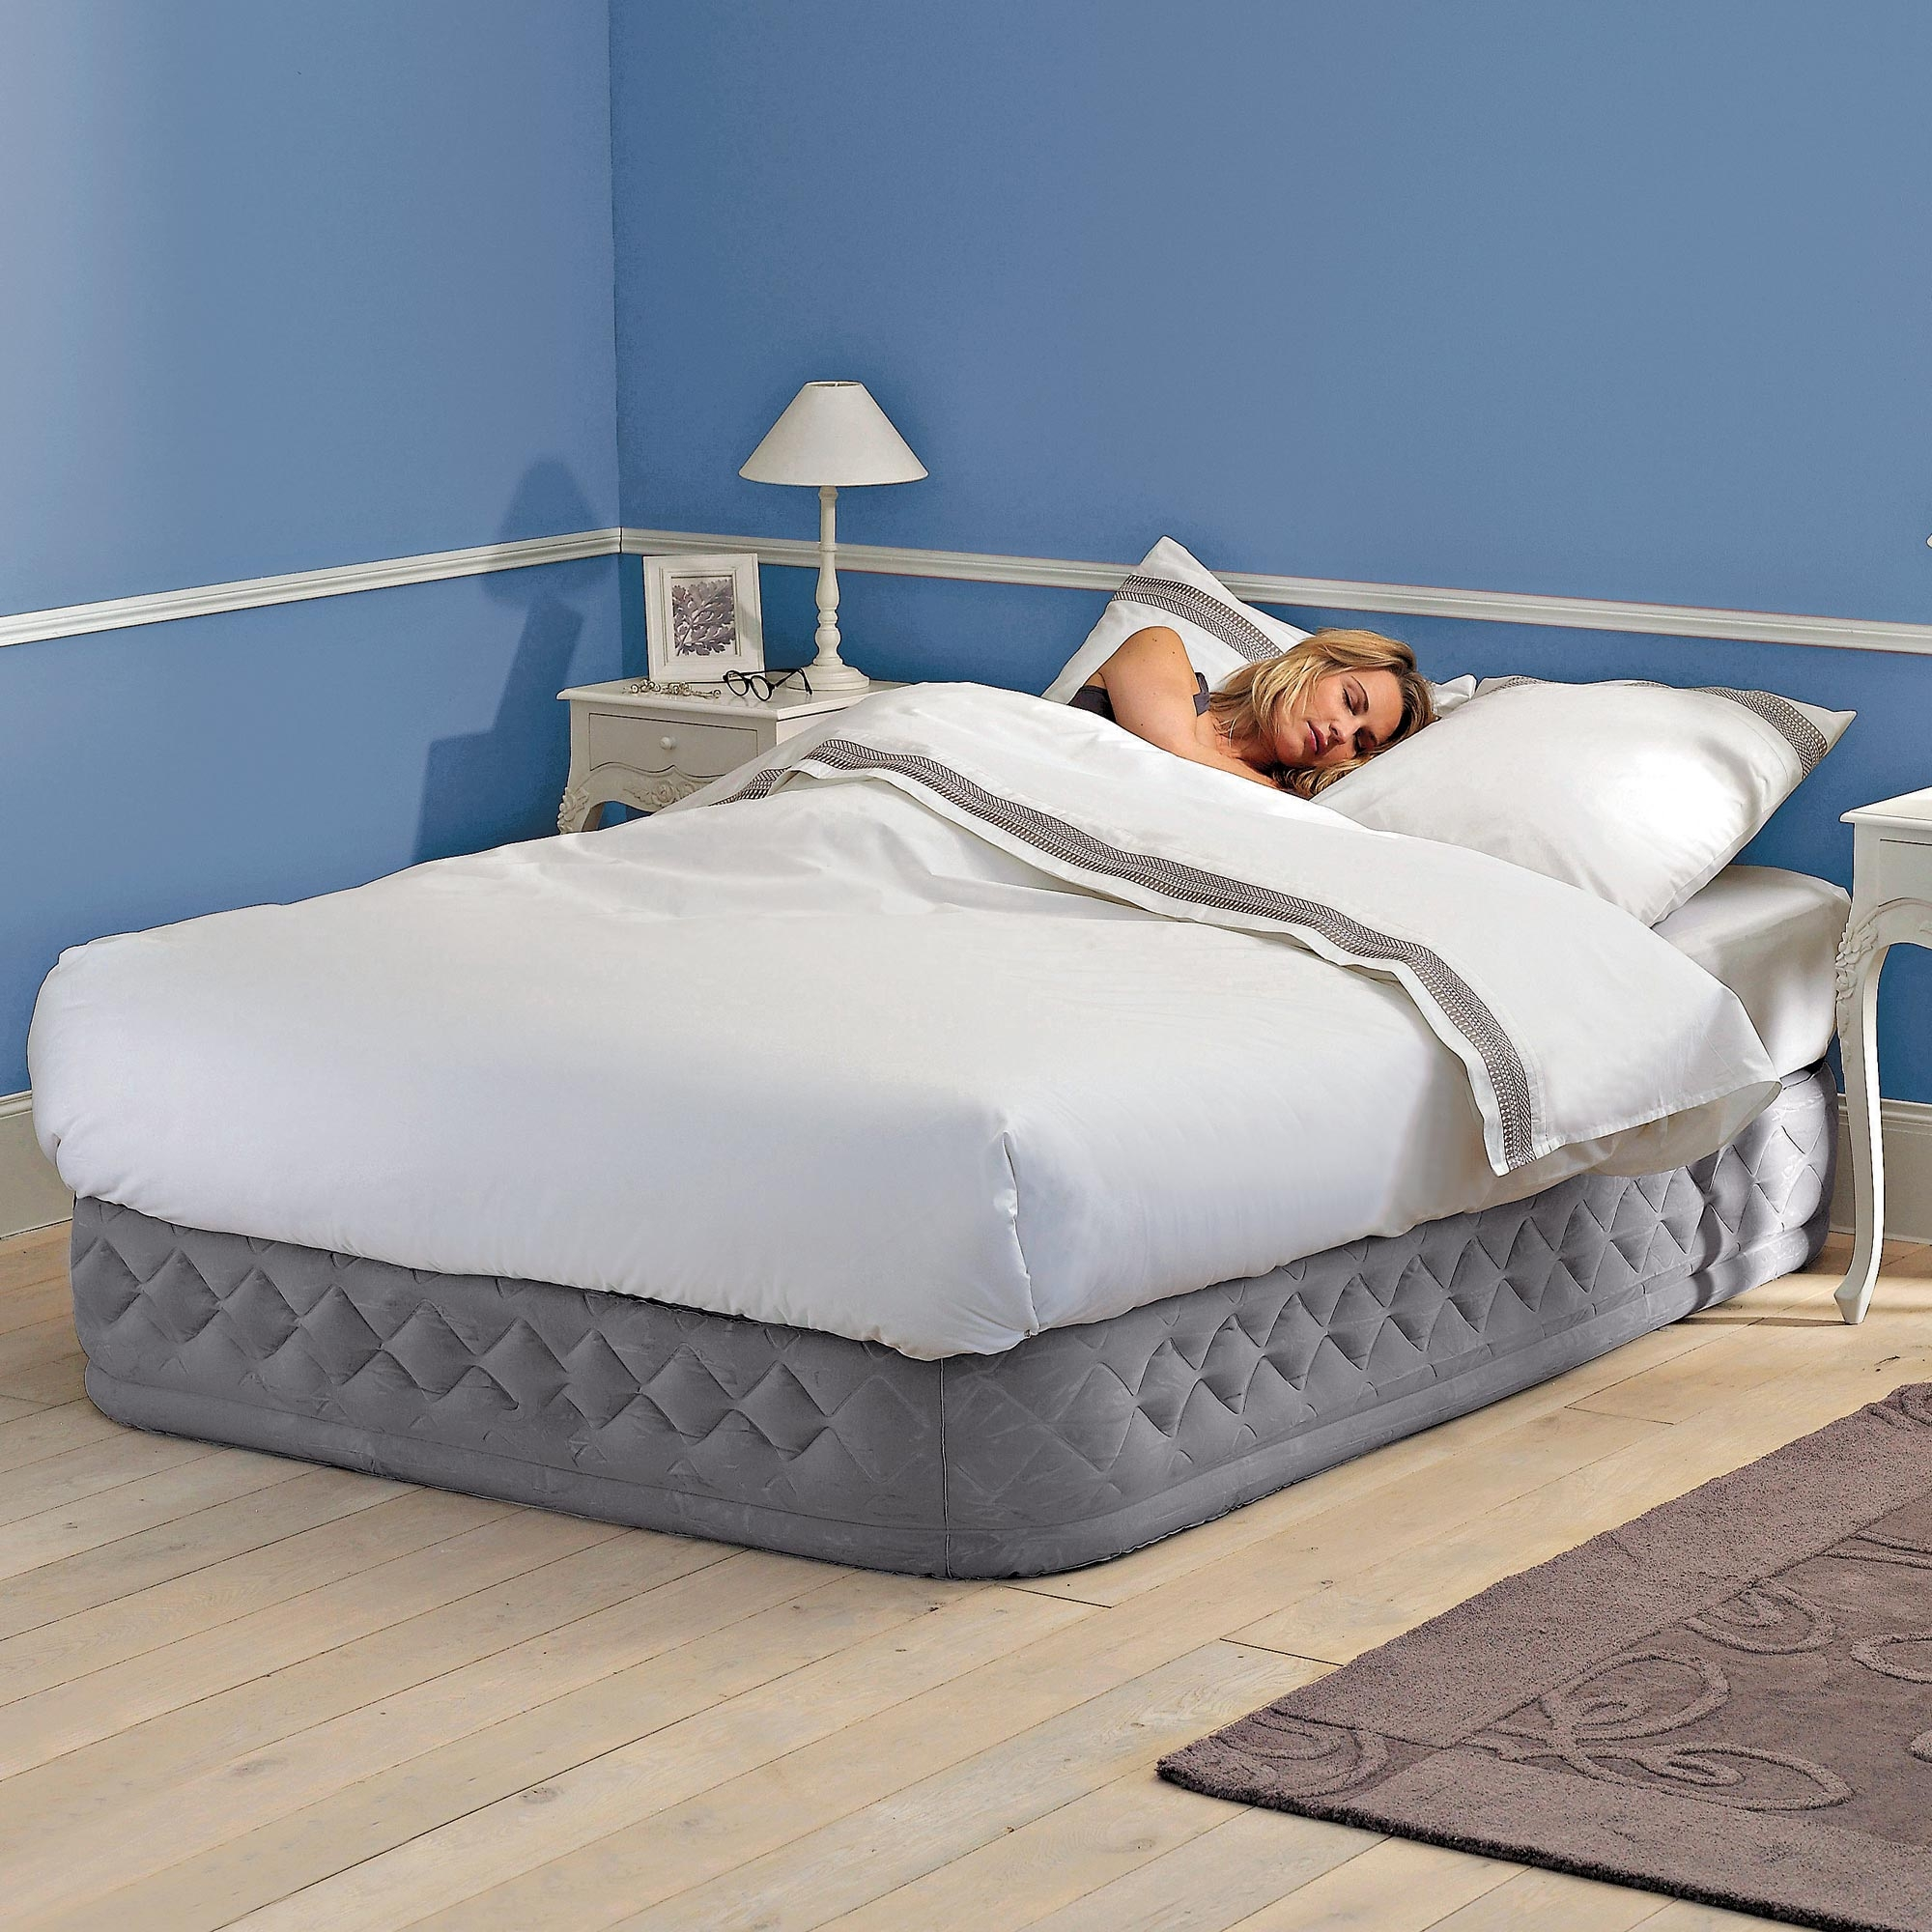 matelas gonflable 2 places floqu acheter ce produit au. Black Bedroom Furniture Sets. Home Design Ideas